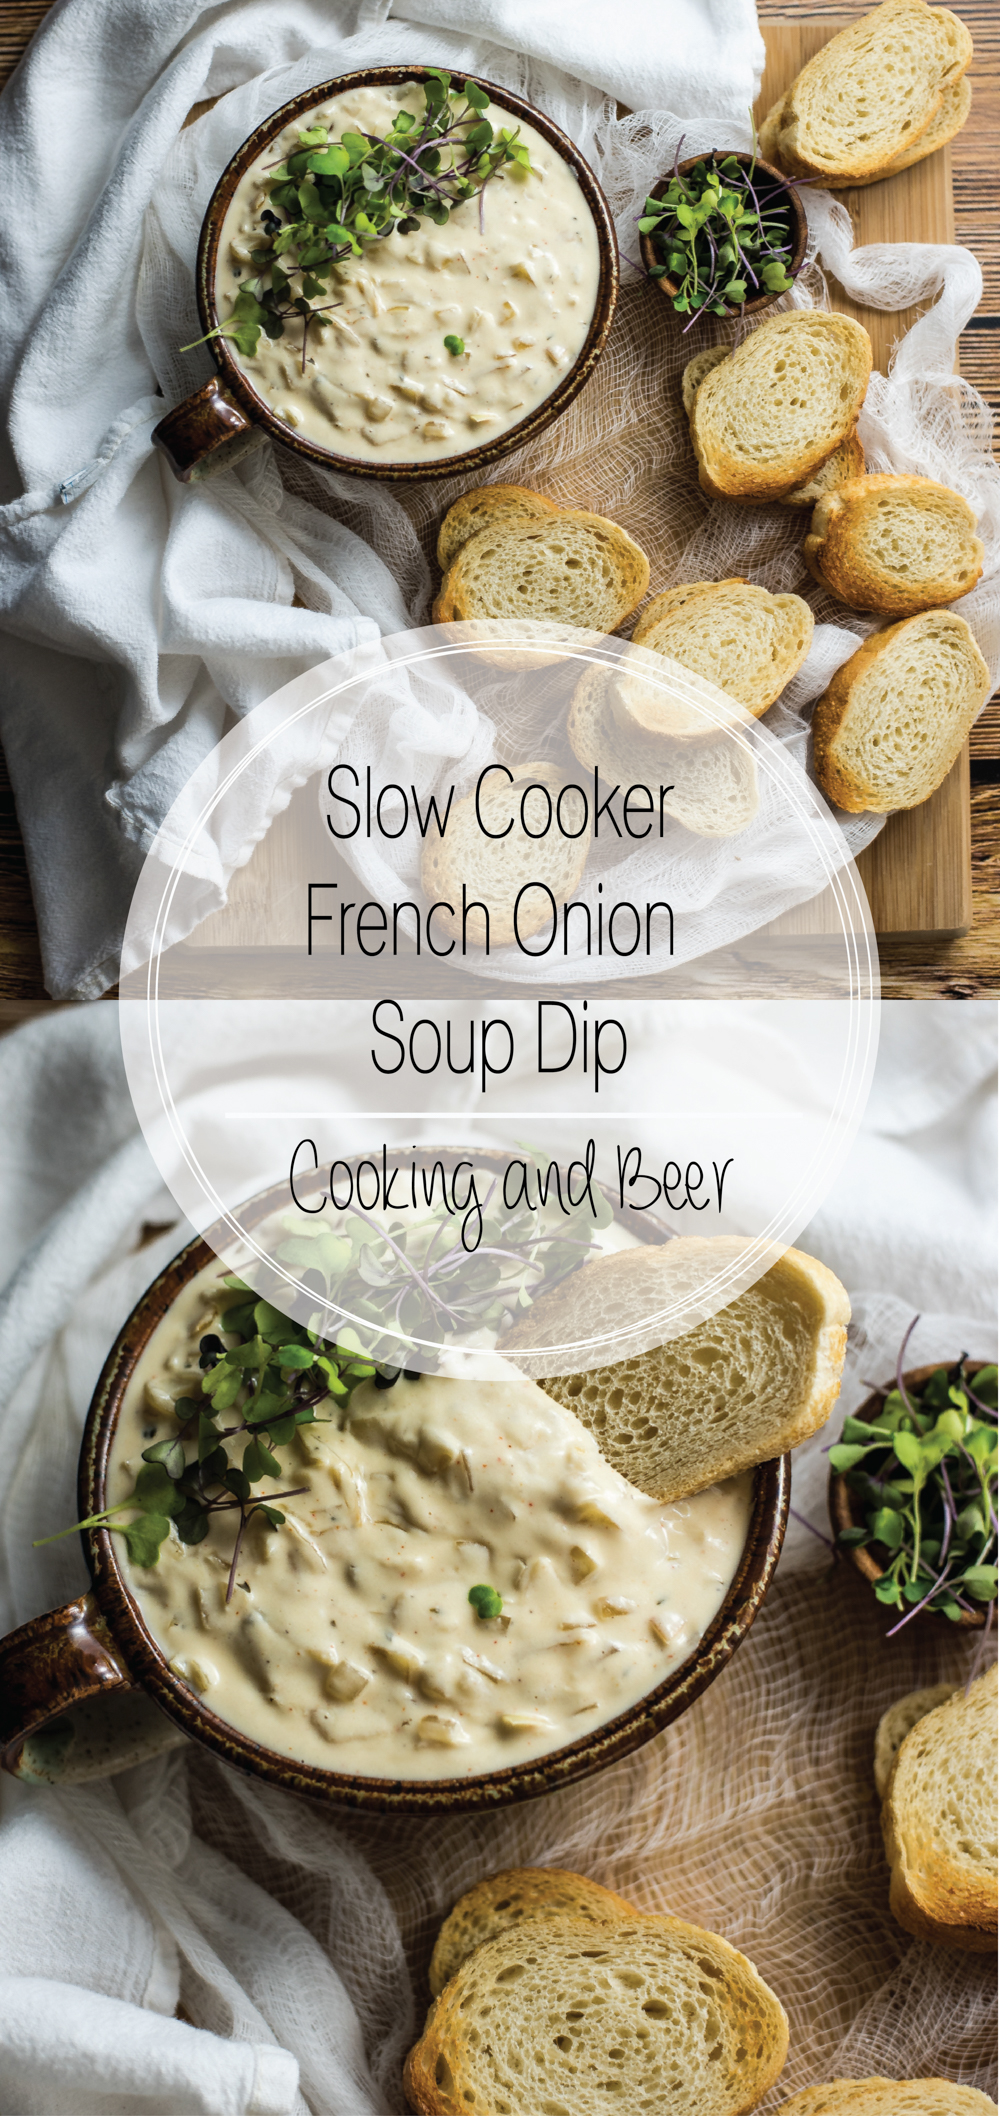 Slow cooker french onion soup dip is a fun take on french onion soup. It's perfect for a date night in or a game day party!